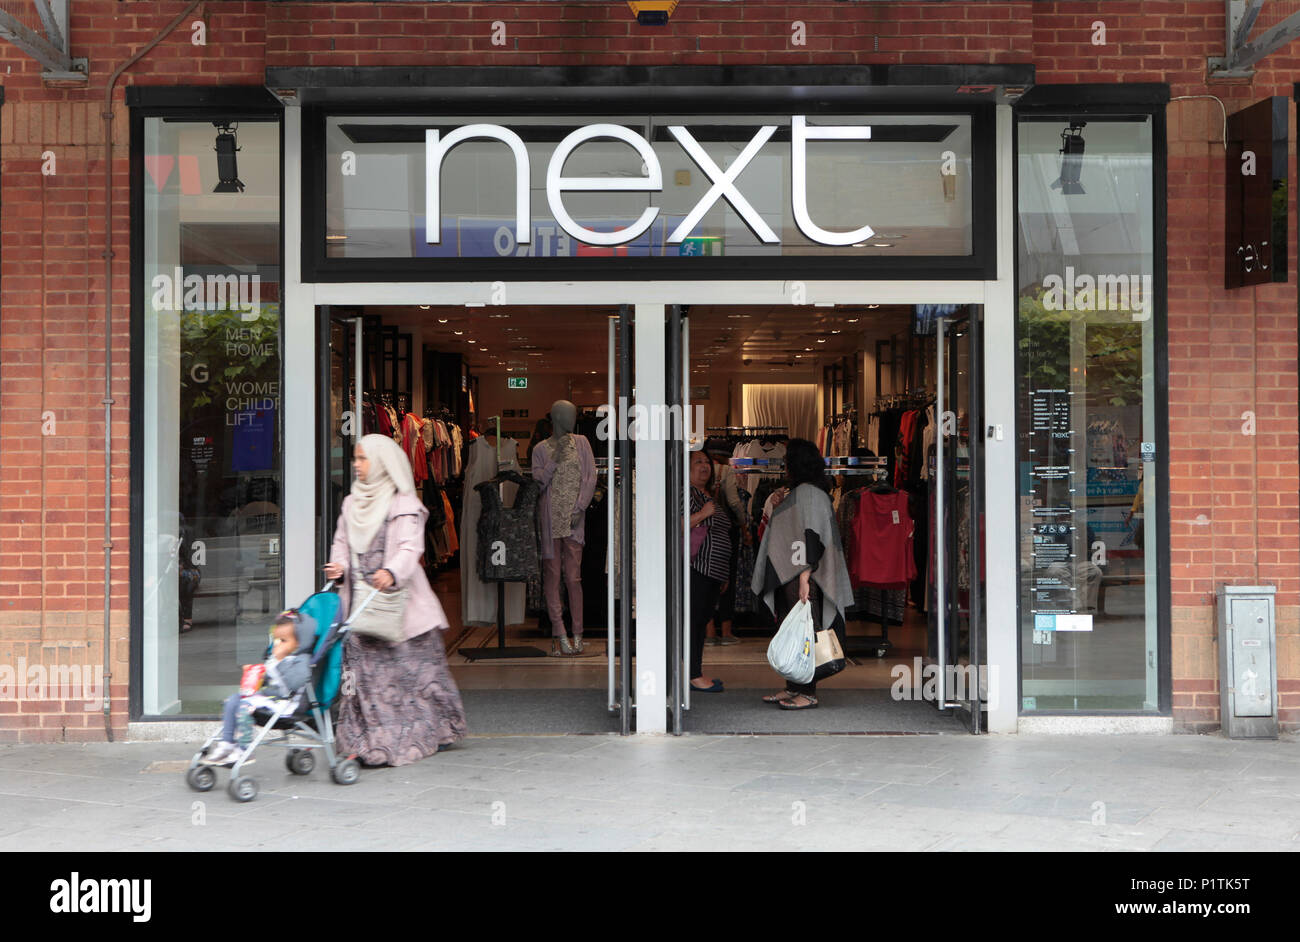 a next fashion outlet, exterior view. Shops and people shopping in Harrow, middlesex, London, UK - Stock Image